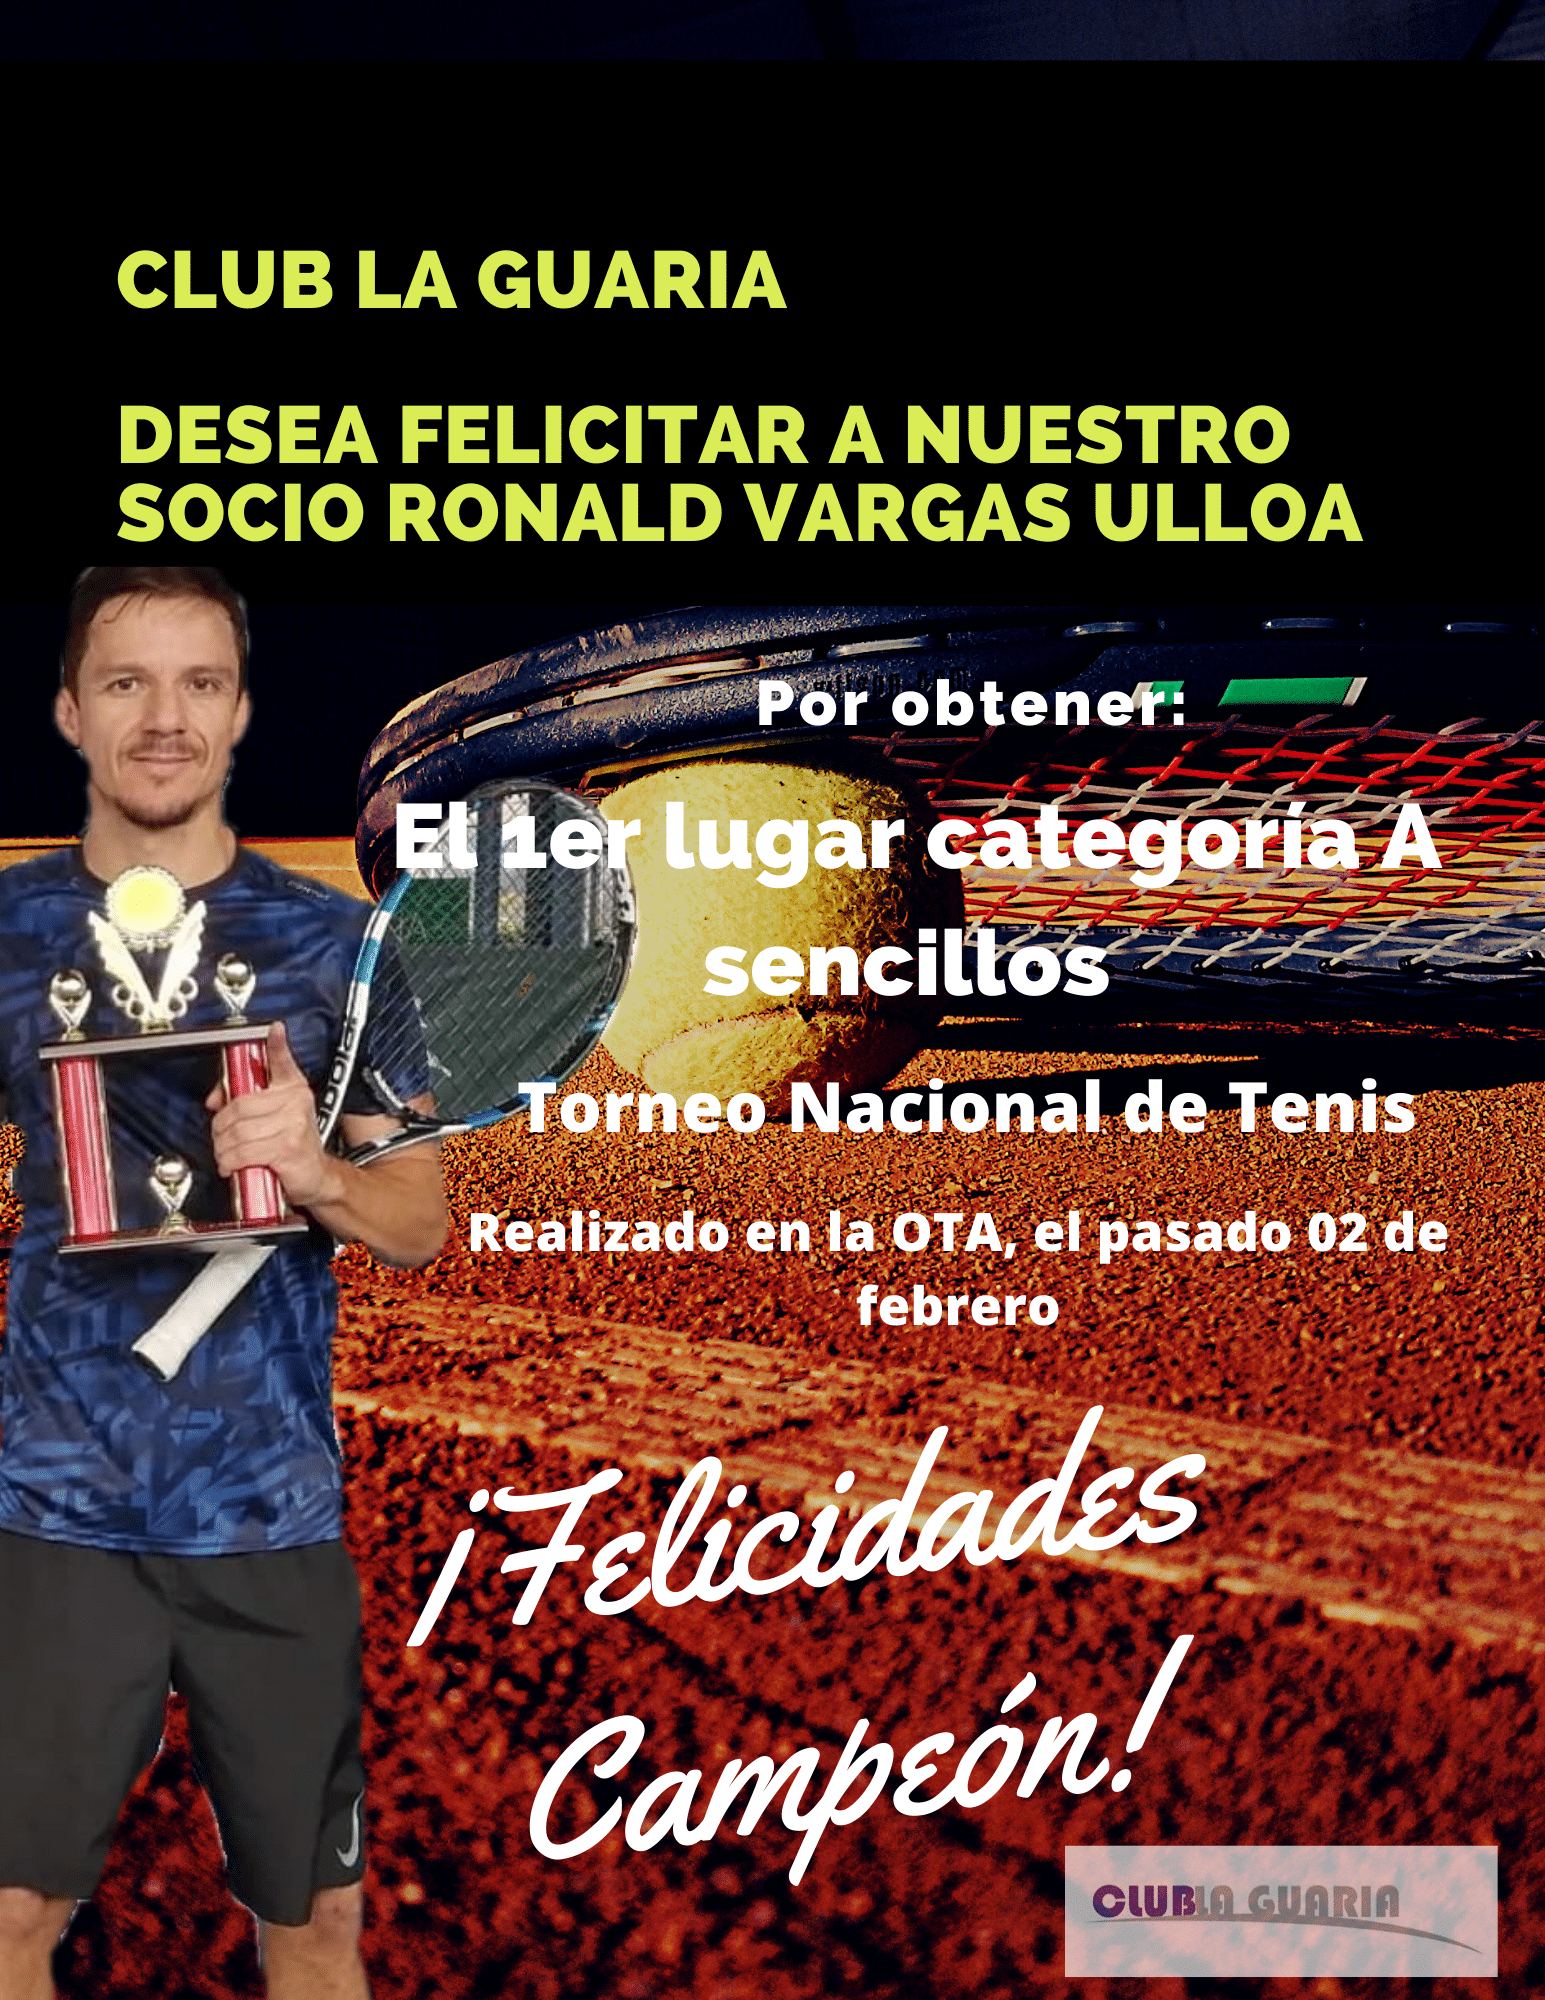 Club La Guaria desea Felicitar